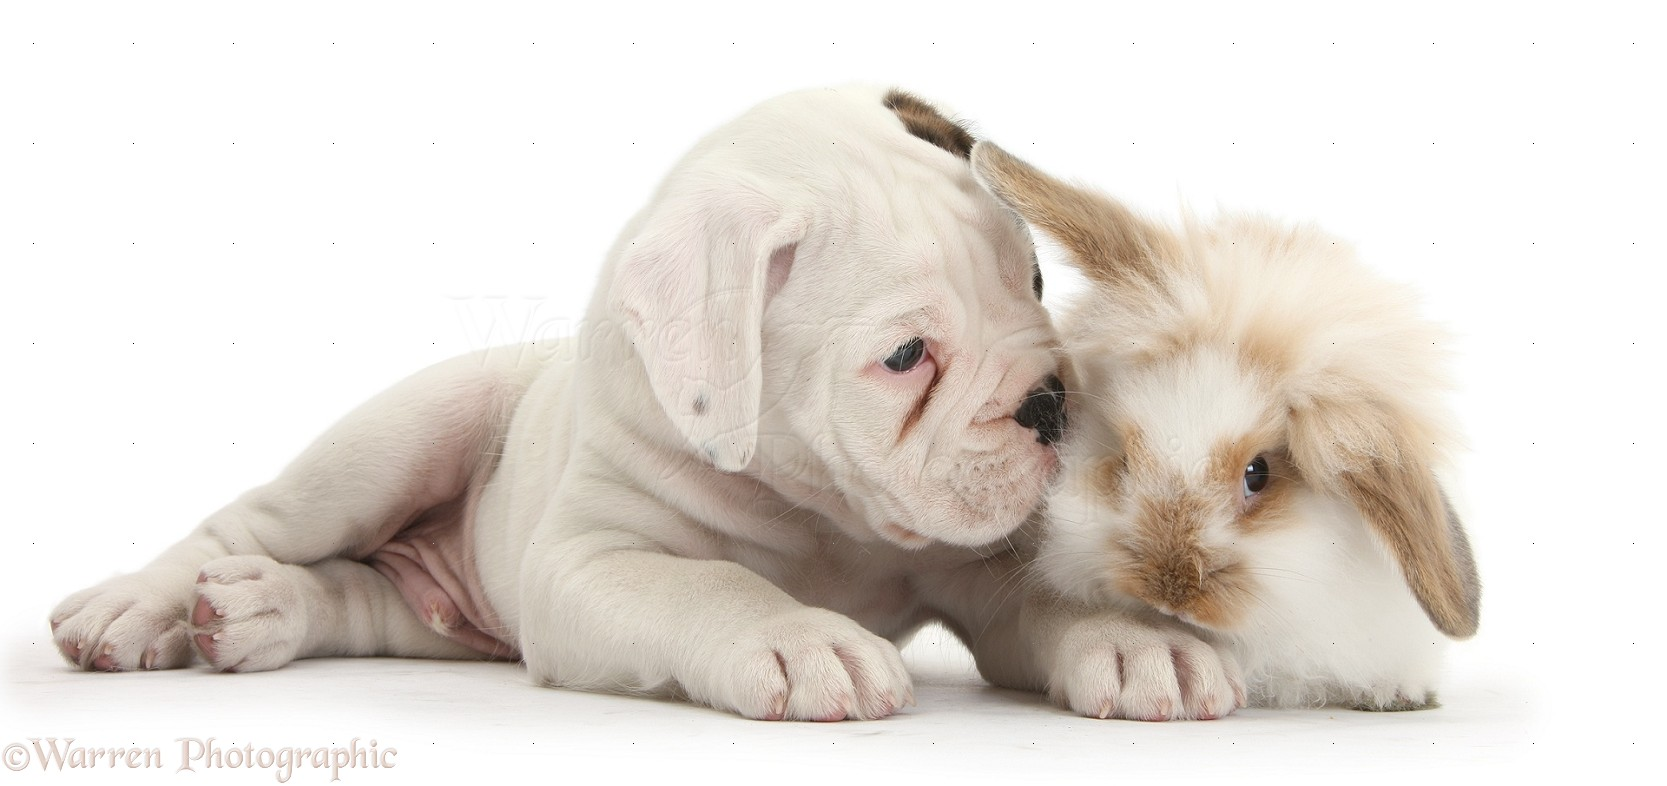 152 Best Easter Dogs images   Dogs, Easter, Cute animals  Boxer Dogs With Bunnies